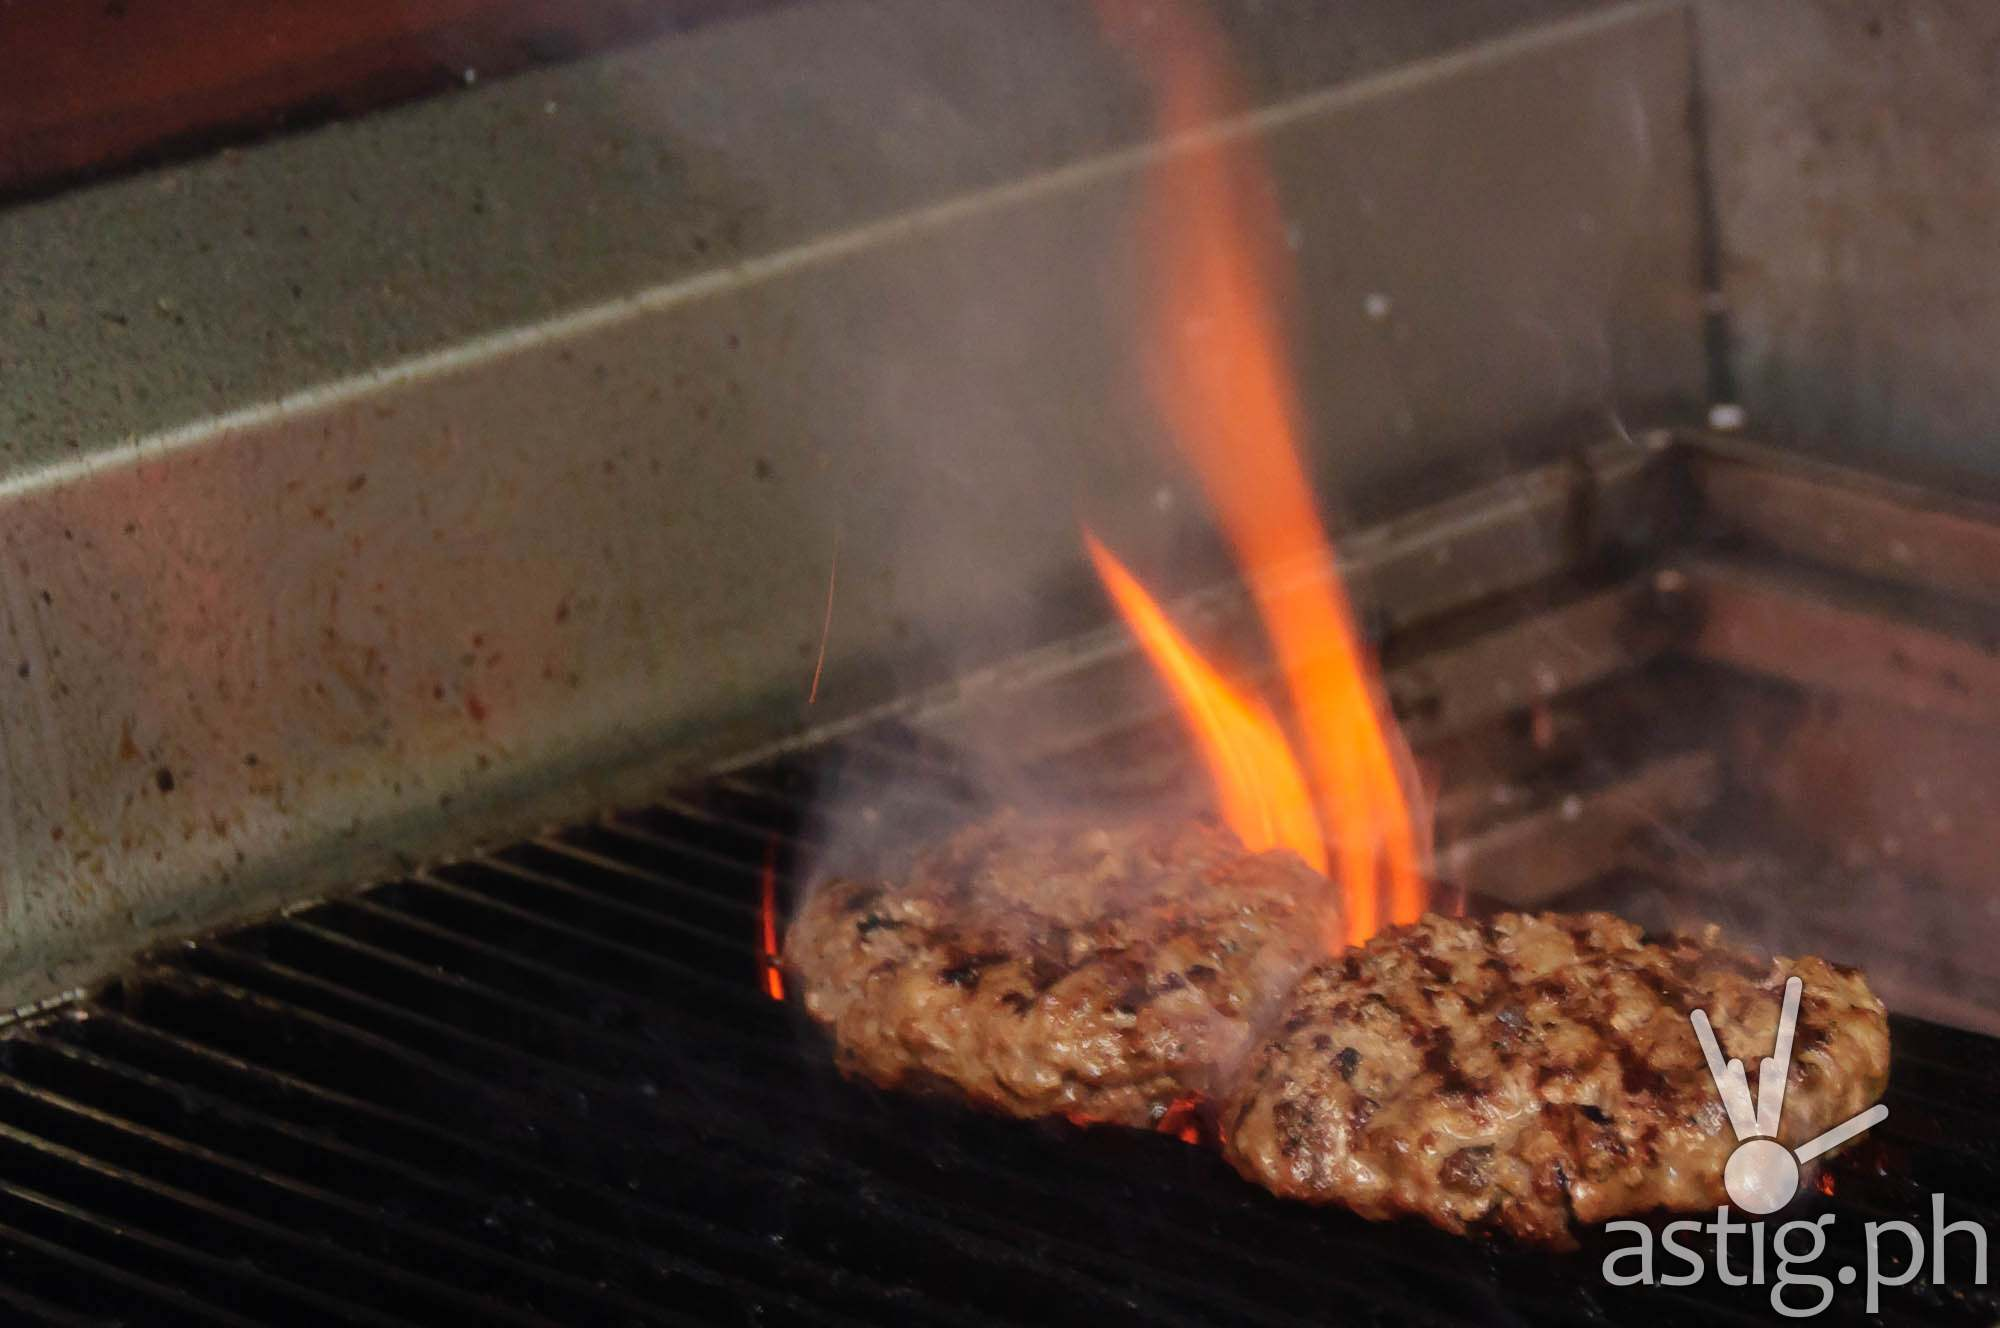 Burger patties being cooked at Wham! Burgers MOA